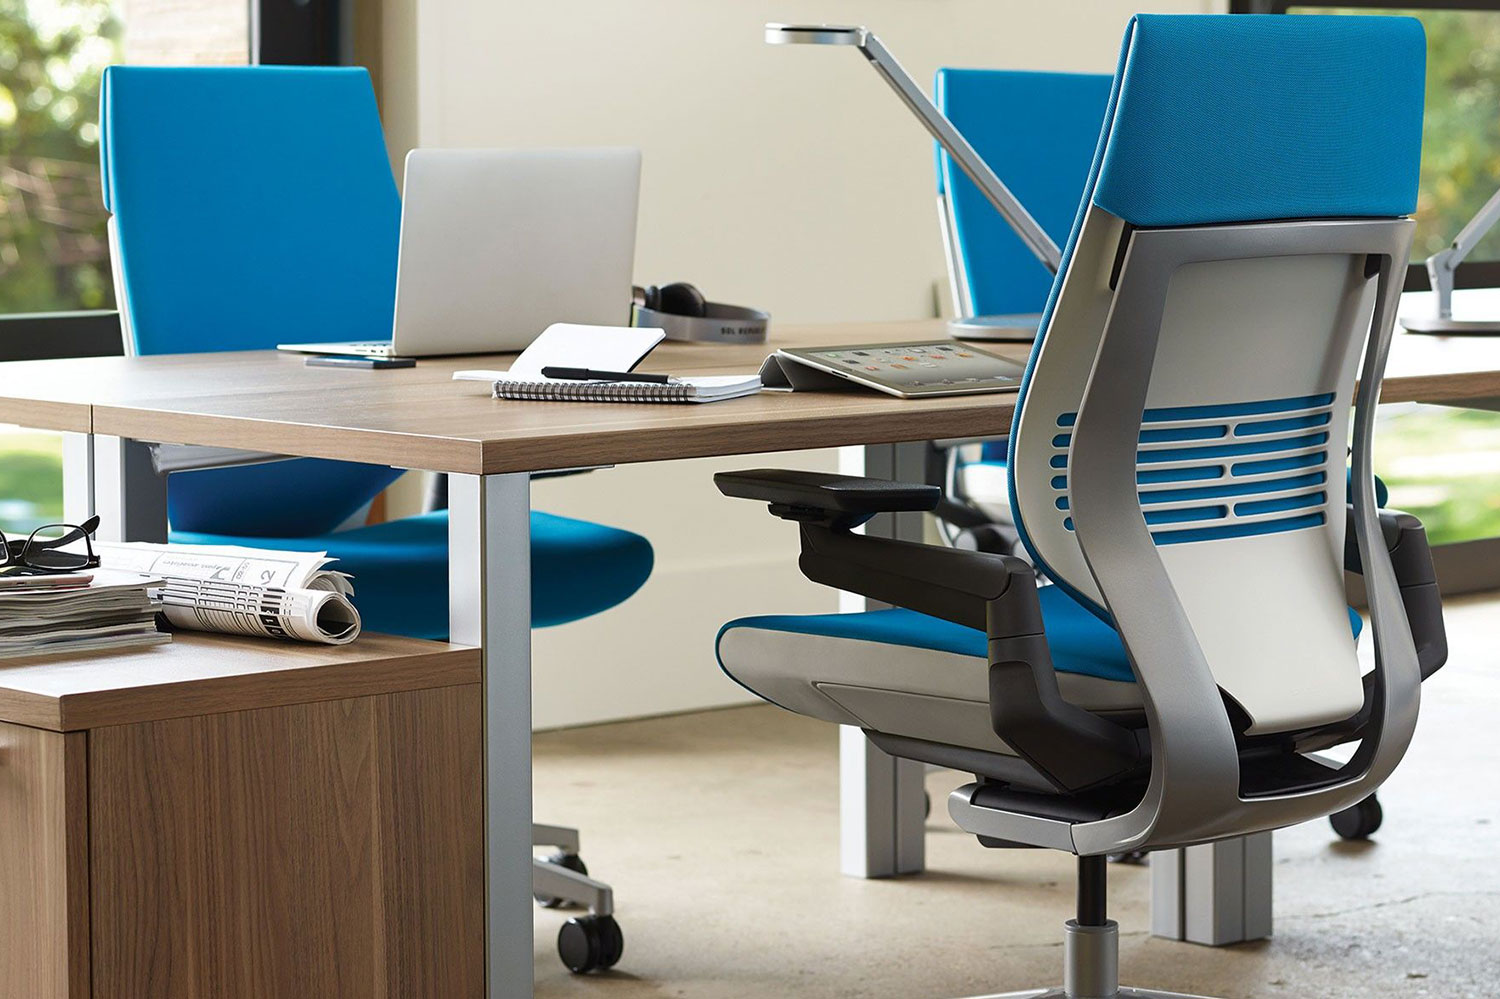 steelcase-geisture-chair